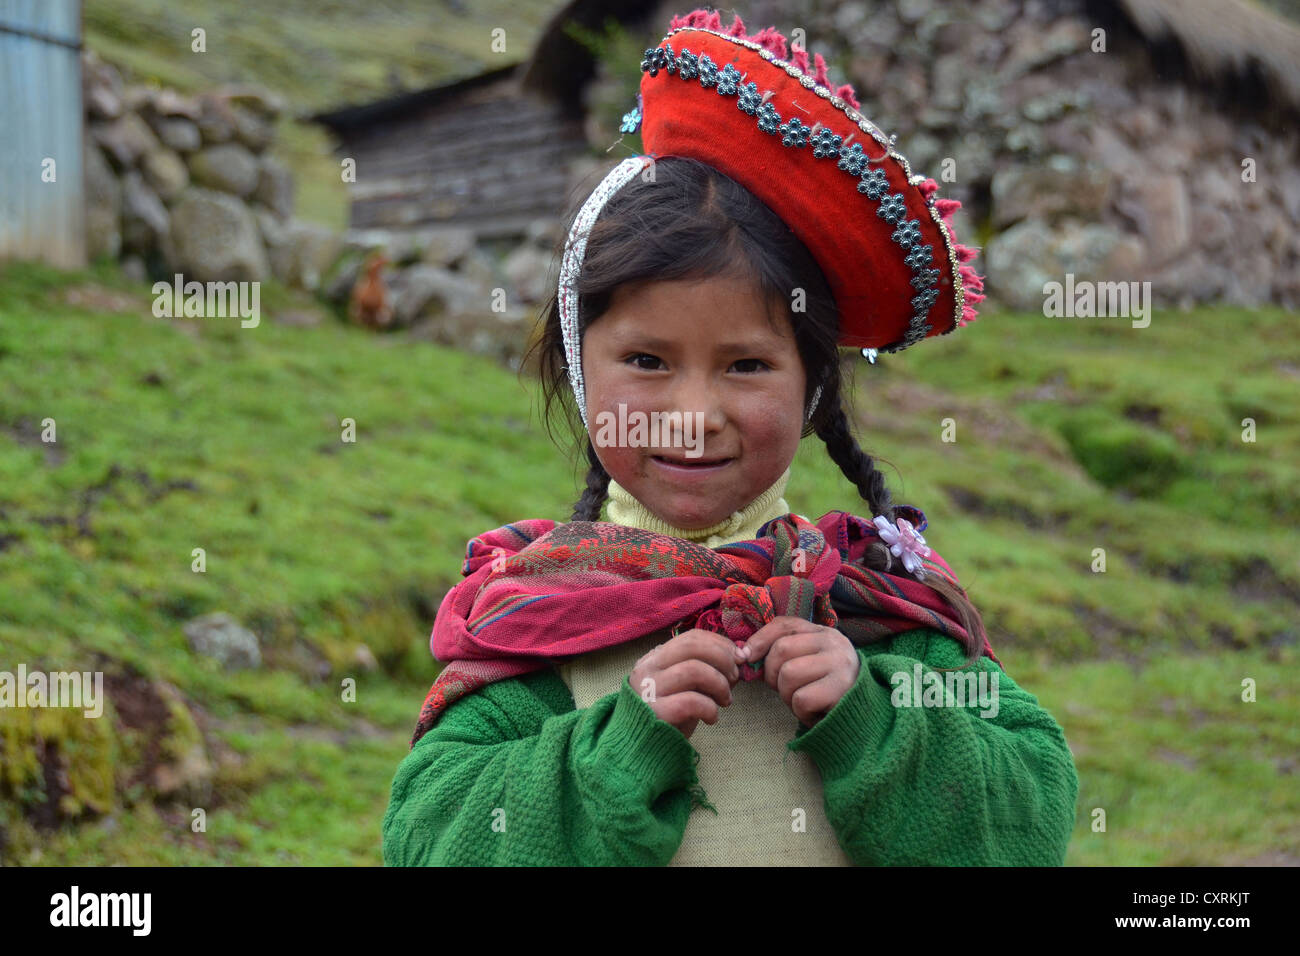 Traditionally dressed Indio girl in the Andes Mountains, near Cuzco, Peru, South America - Stock Image